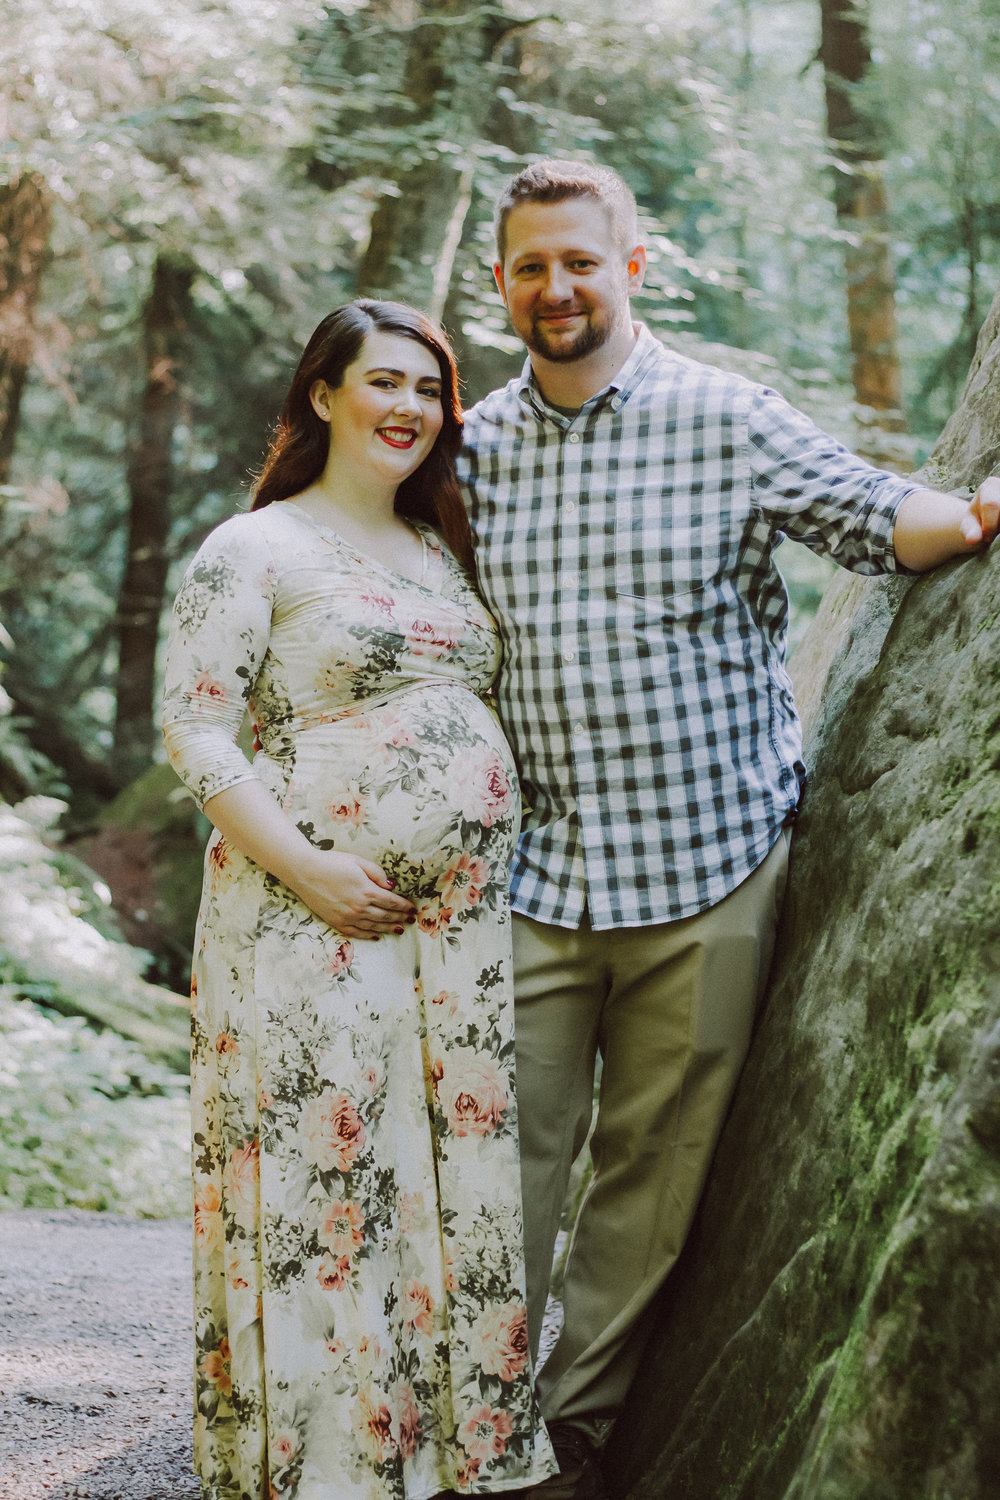 Couple smiling, Artistic + Woodsy Maternity Session | Sarah P Thomas Photography